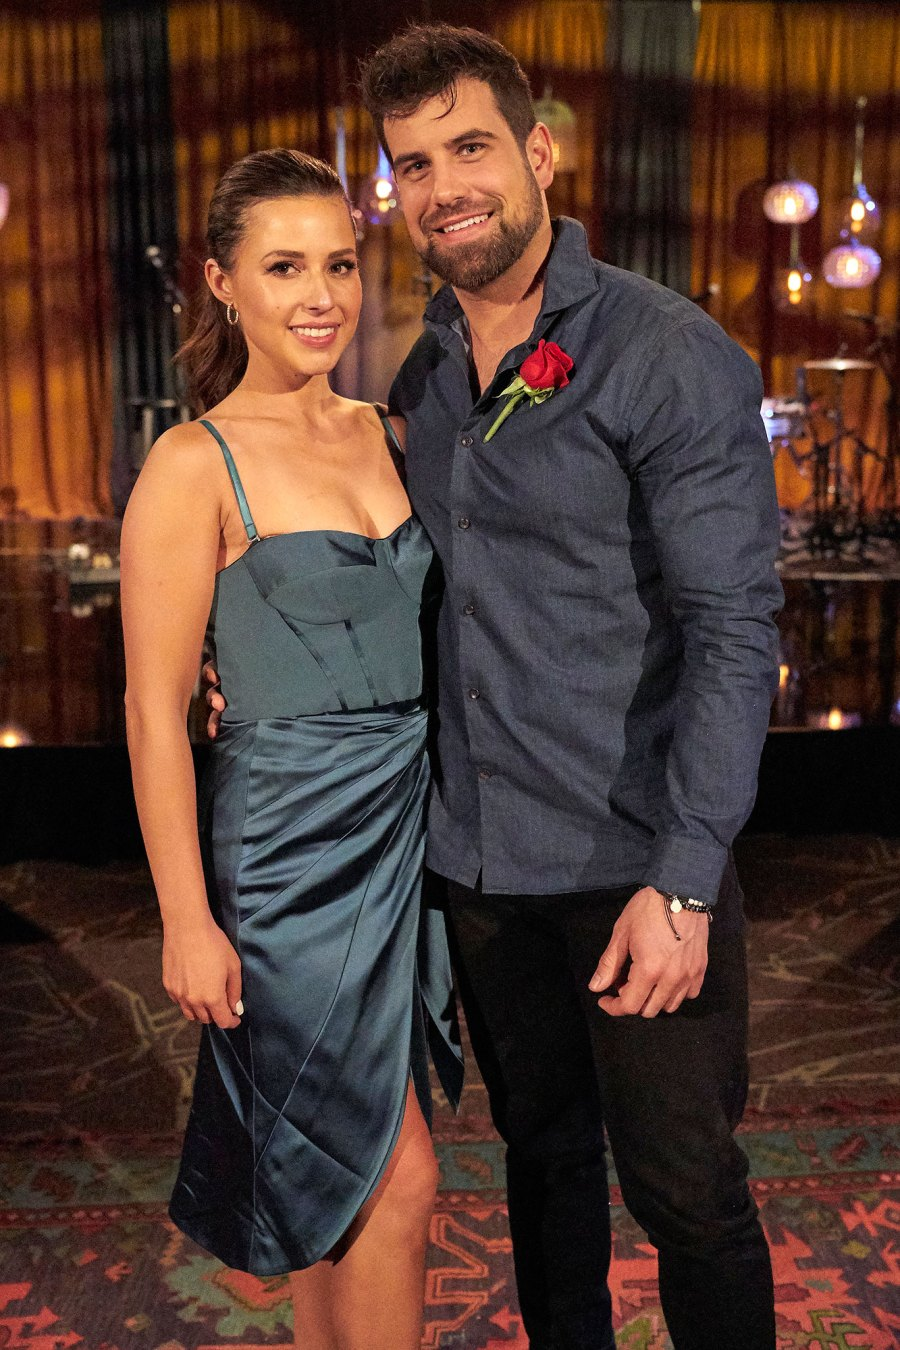 Katie Thurston and Blake Moynes Bachelorette After the Final Rose Revelations Feature